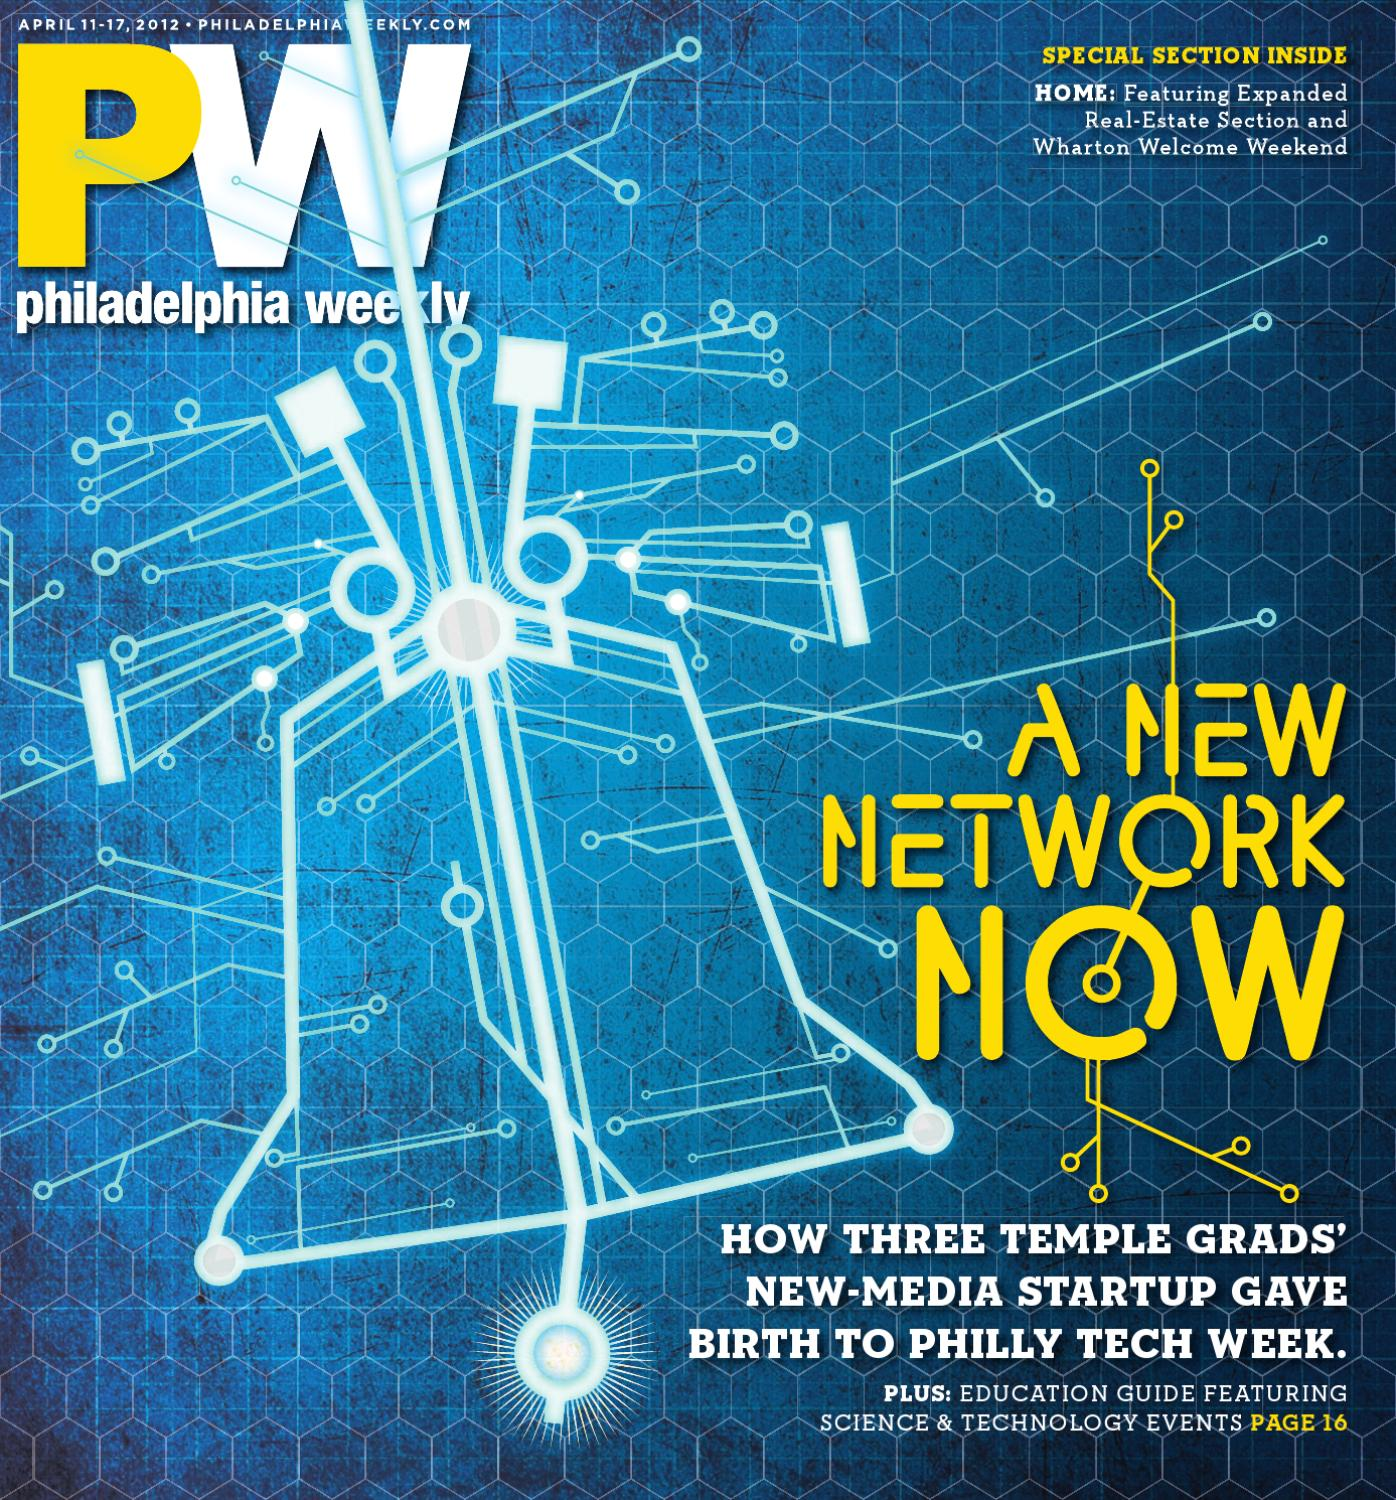 Philadelphia Weekly 04 11 2012 By Philadelphia Weekly Issuu